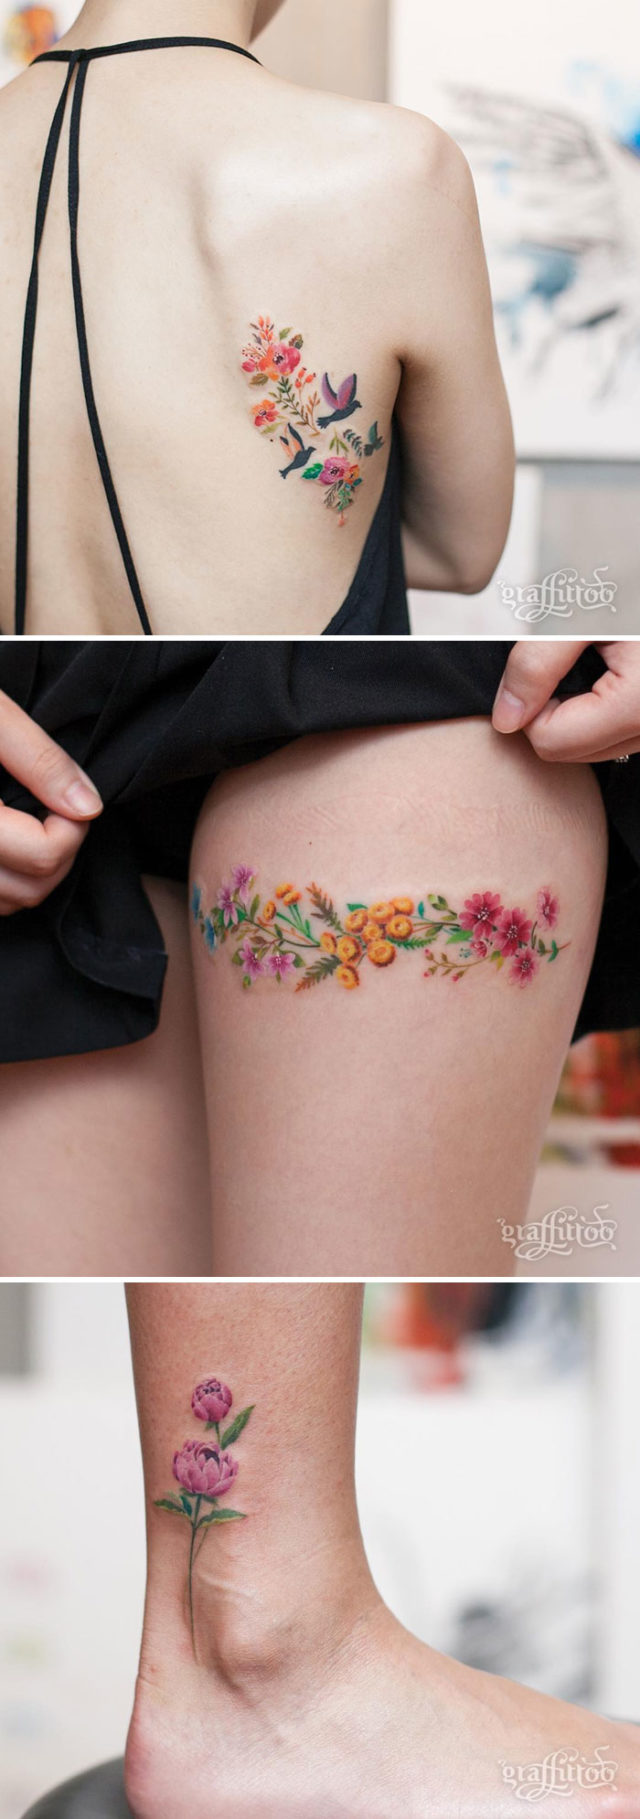 Floral tattoo artists 21 58e25ec3bd303__700.jpg